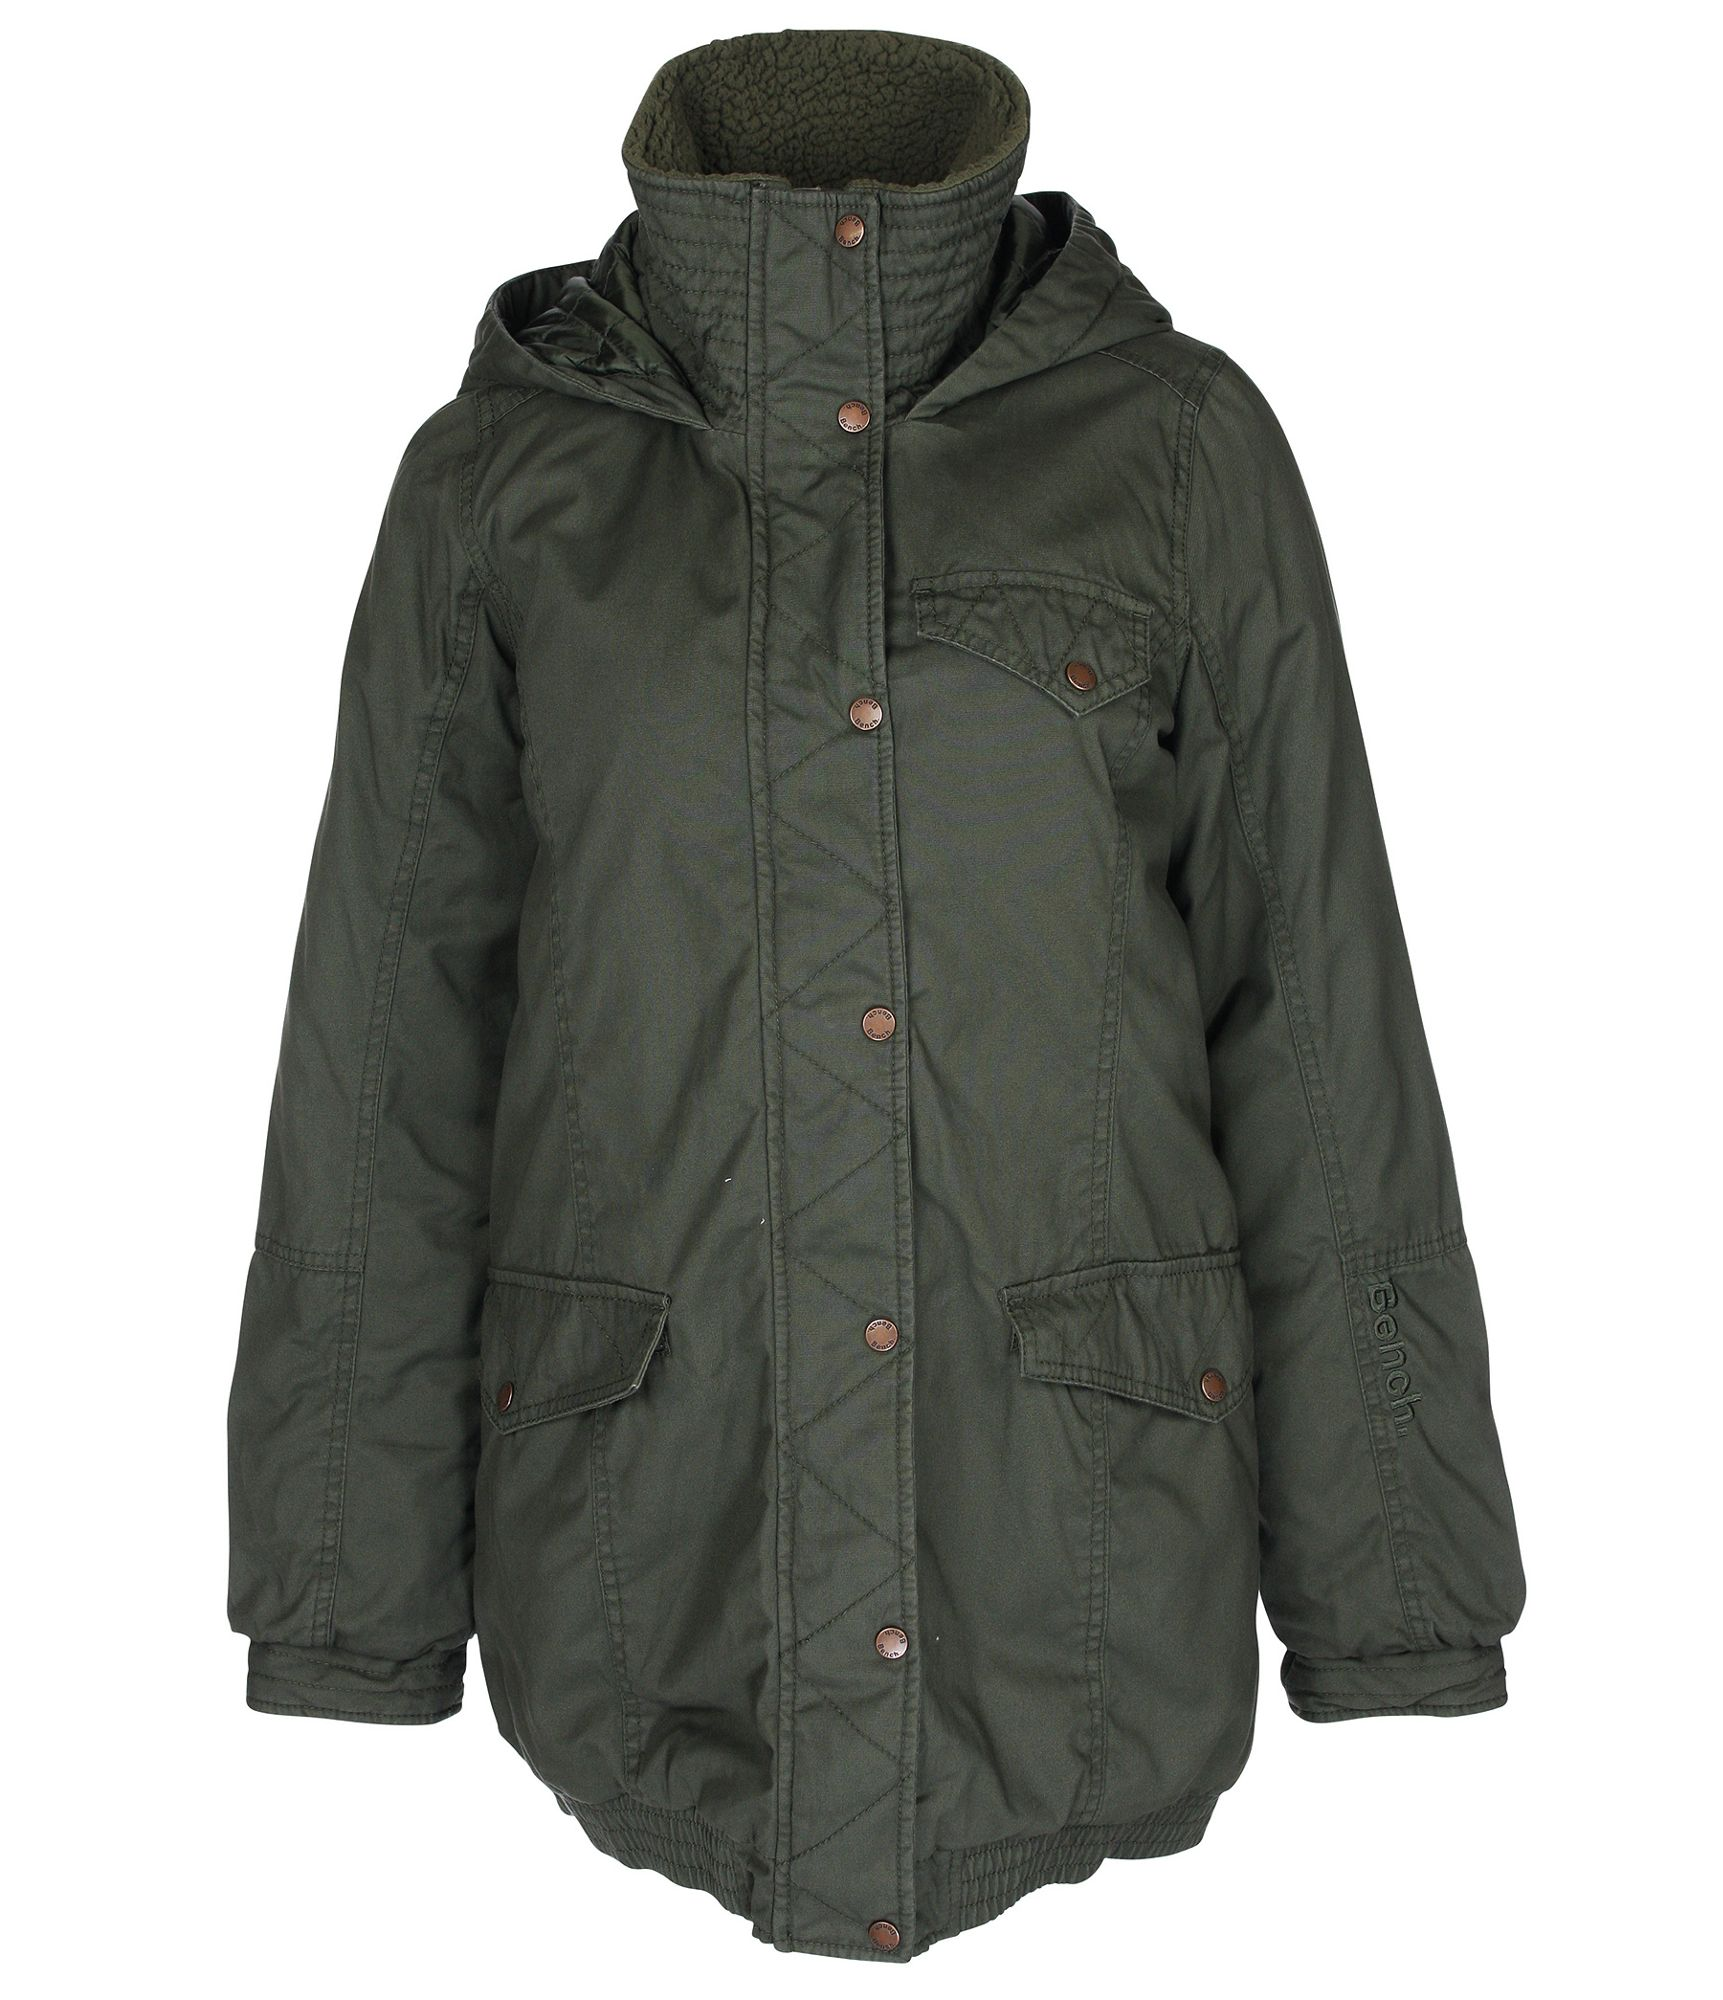 Bench womens pea pod heavy jacket in gray black diamond Bench jacket